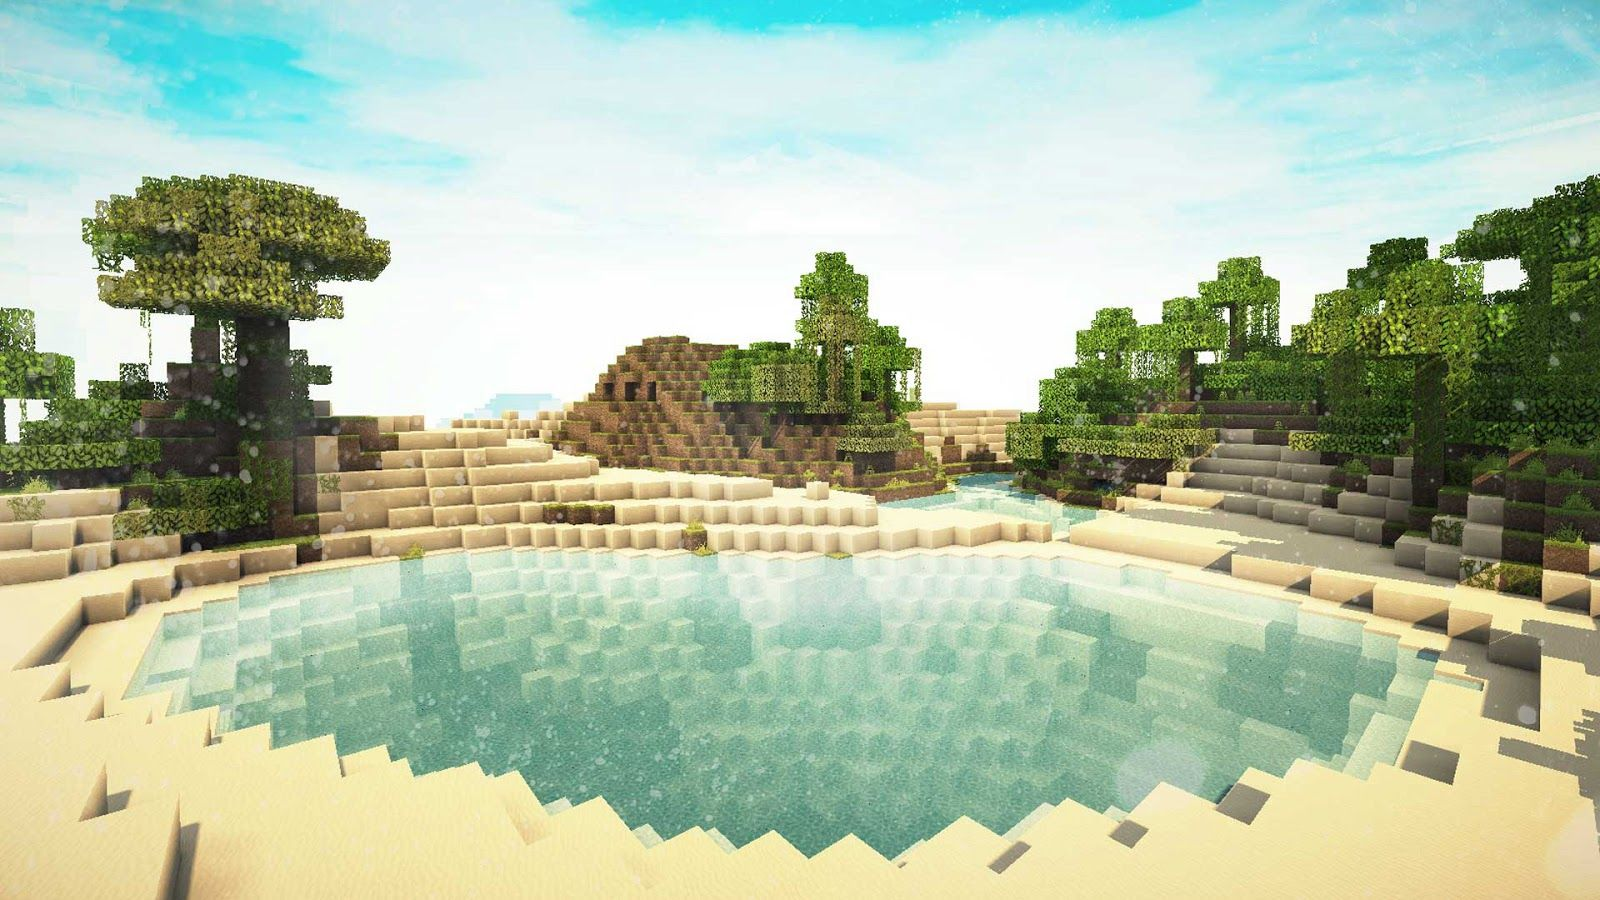 Mac iMac  Minecraft Wallpapers HD, Desktop Backgrounds  1920×1080 Minecraft Wallpapers HD (39 Wallpapers) | Adorable Wallpapers